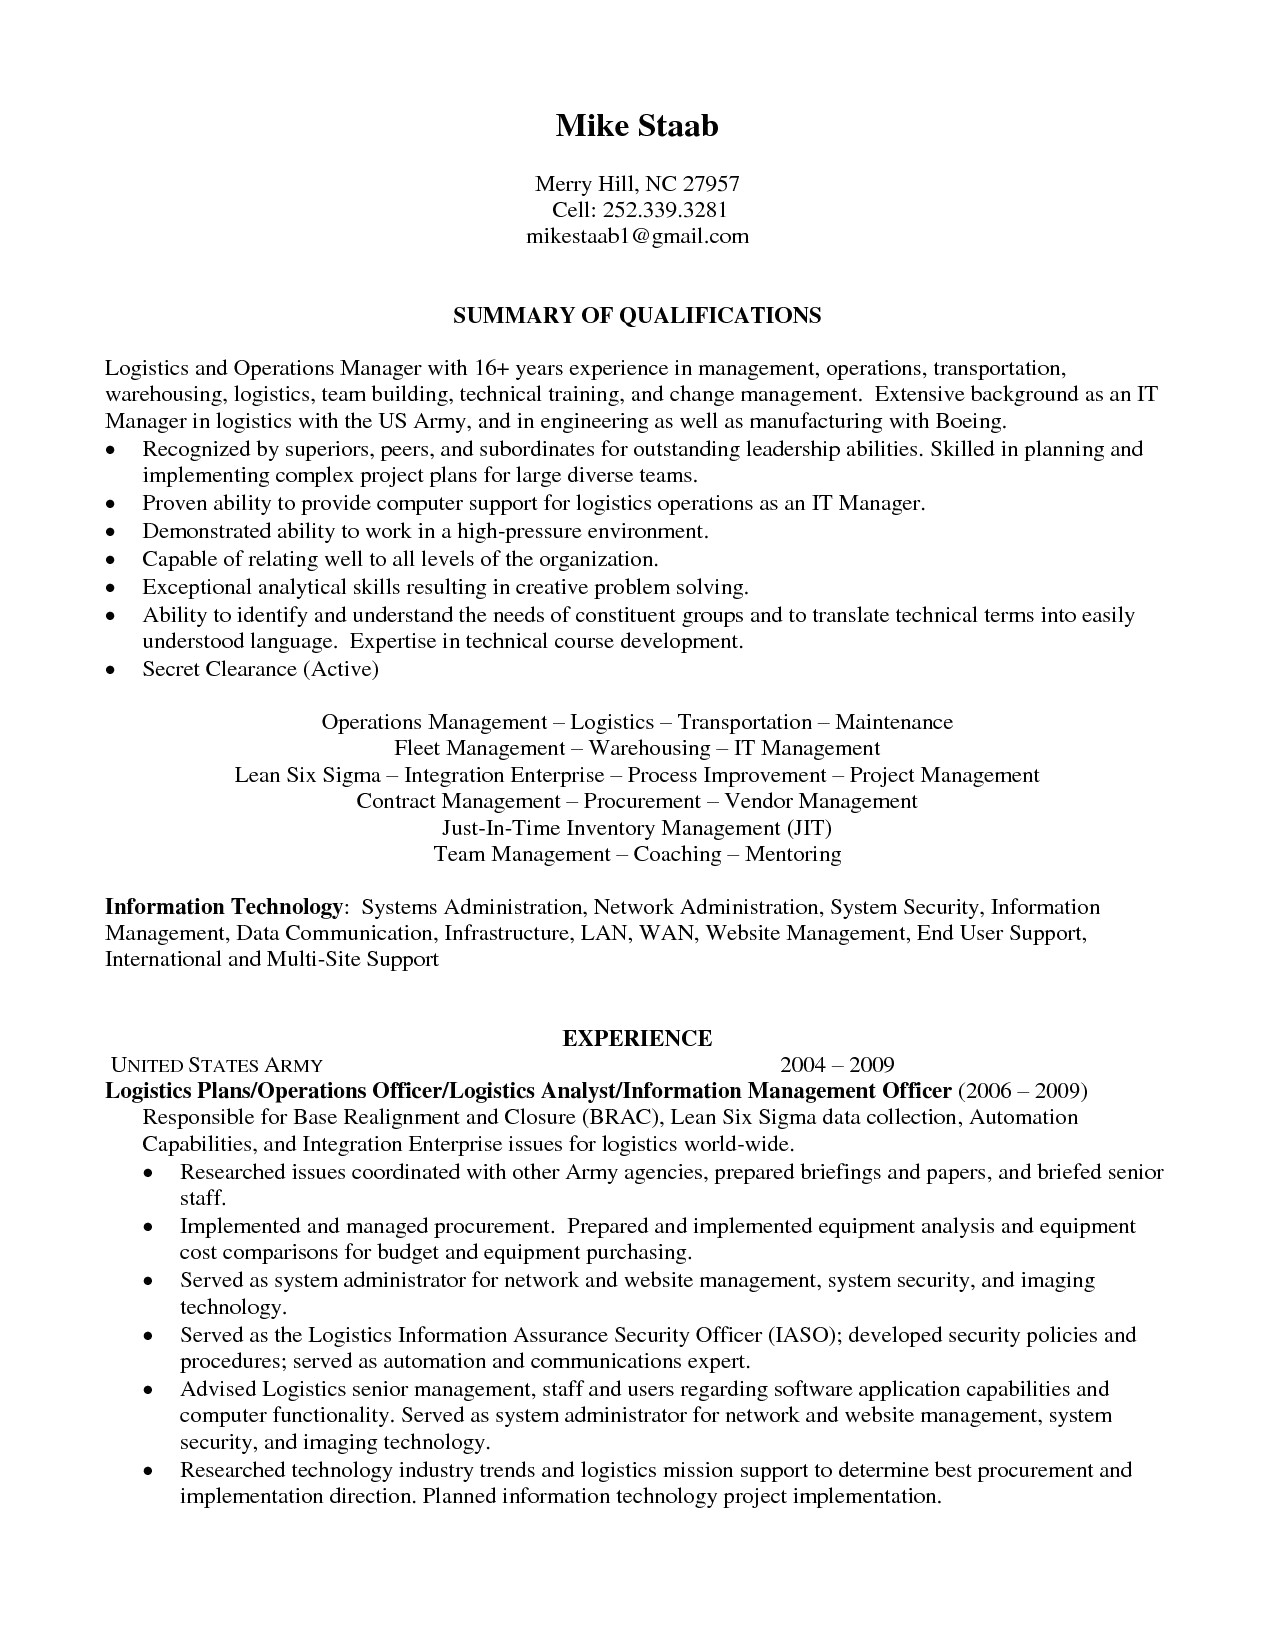 system administrator resume example-Related Post system administrator resume regarding 9-q